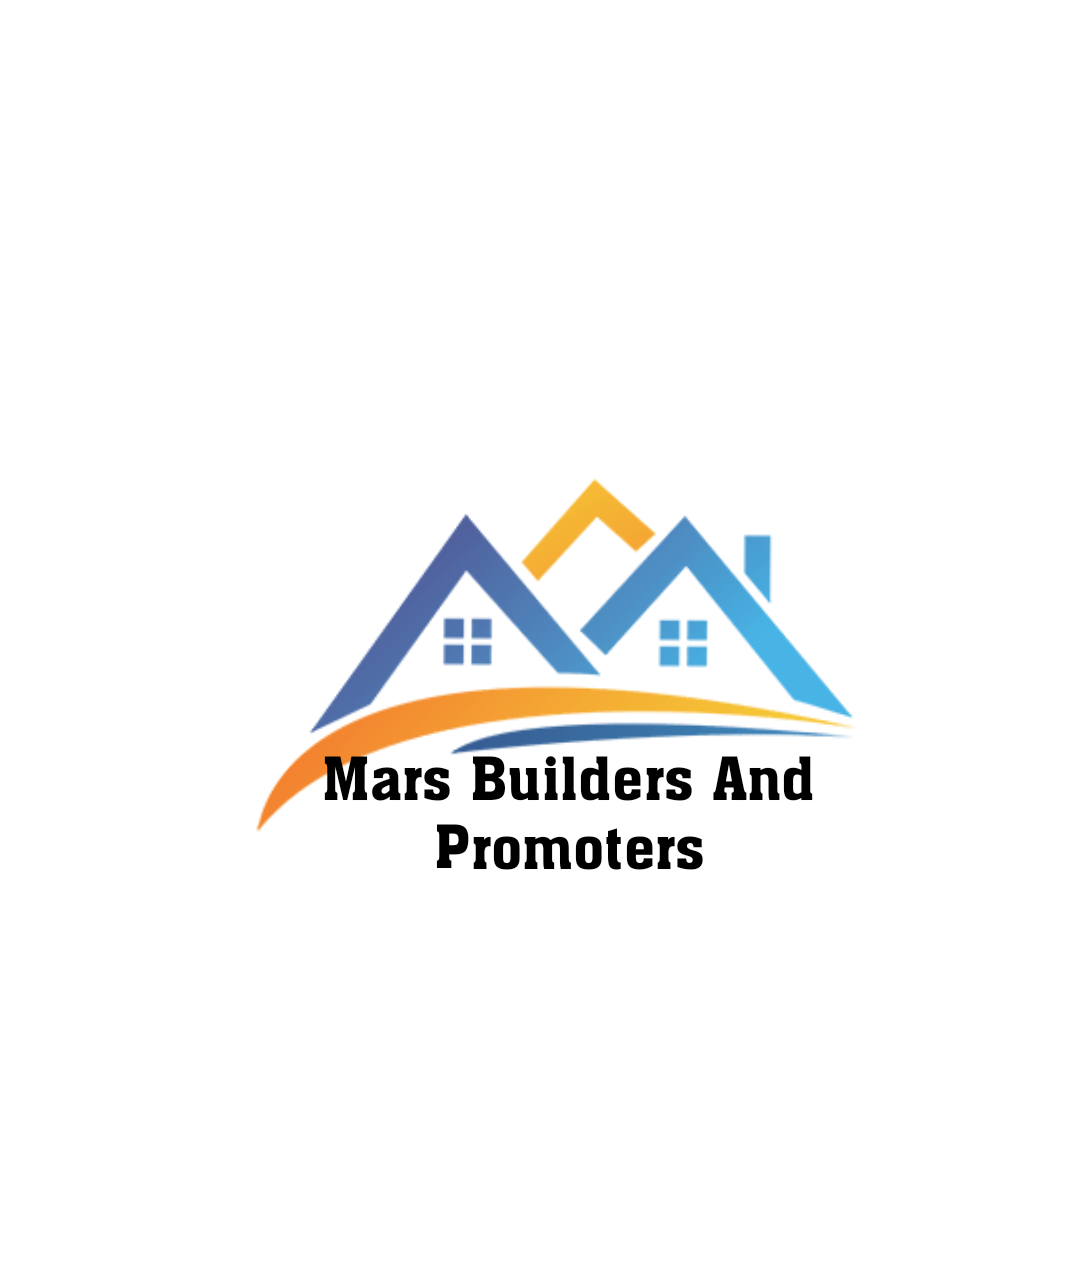 Mars Builders And Promoters